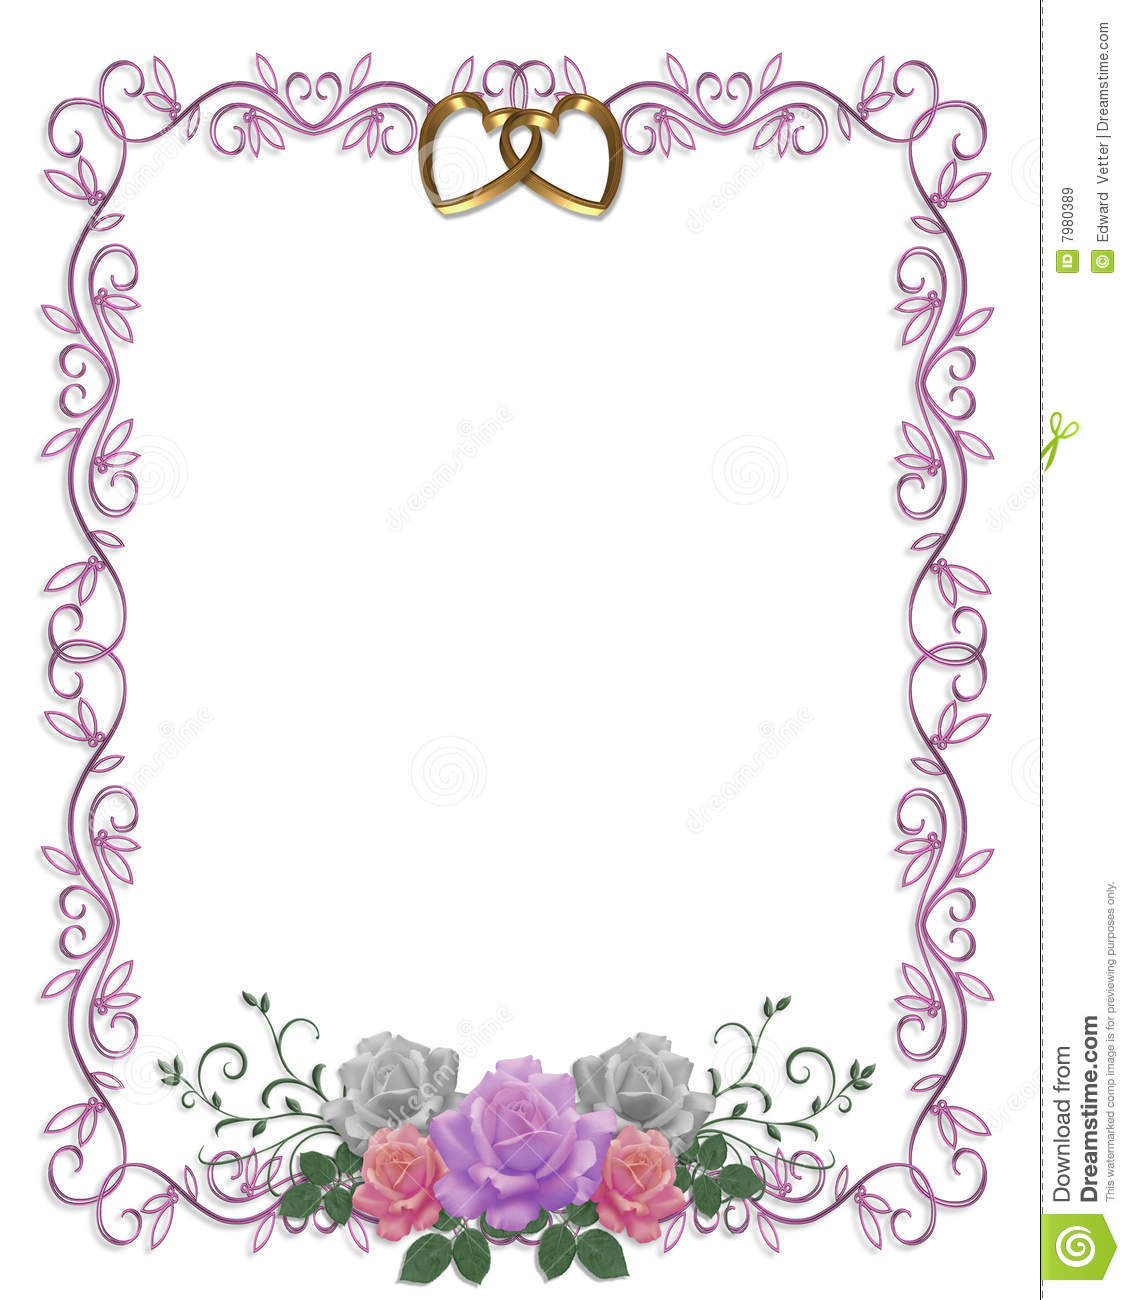 Wedding invitation floral border roses stock illustration for Wedding invitation page borders free download